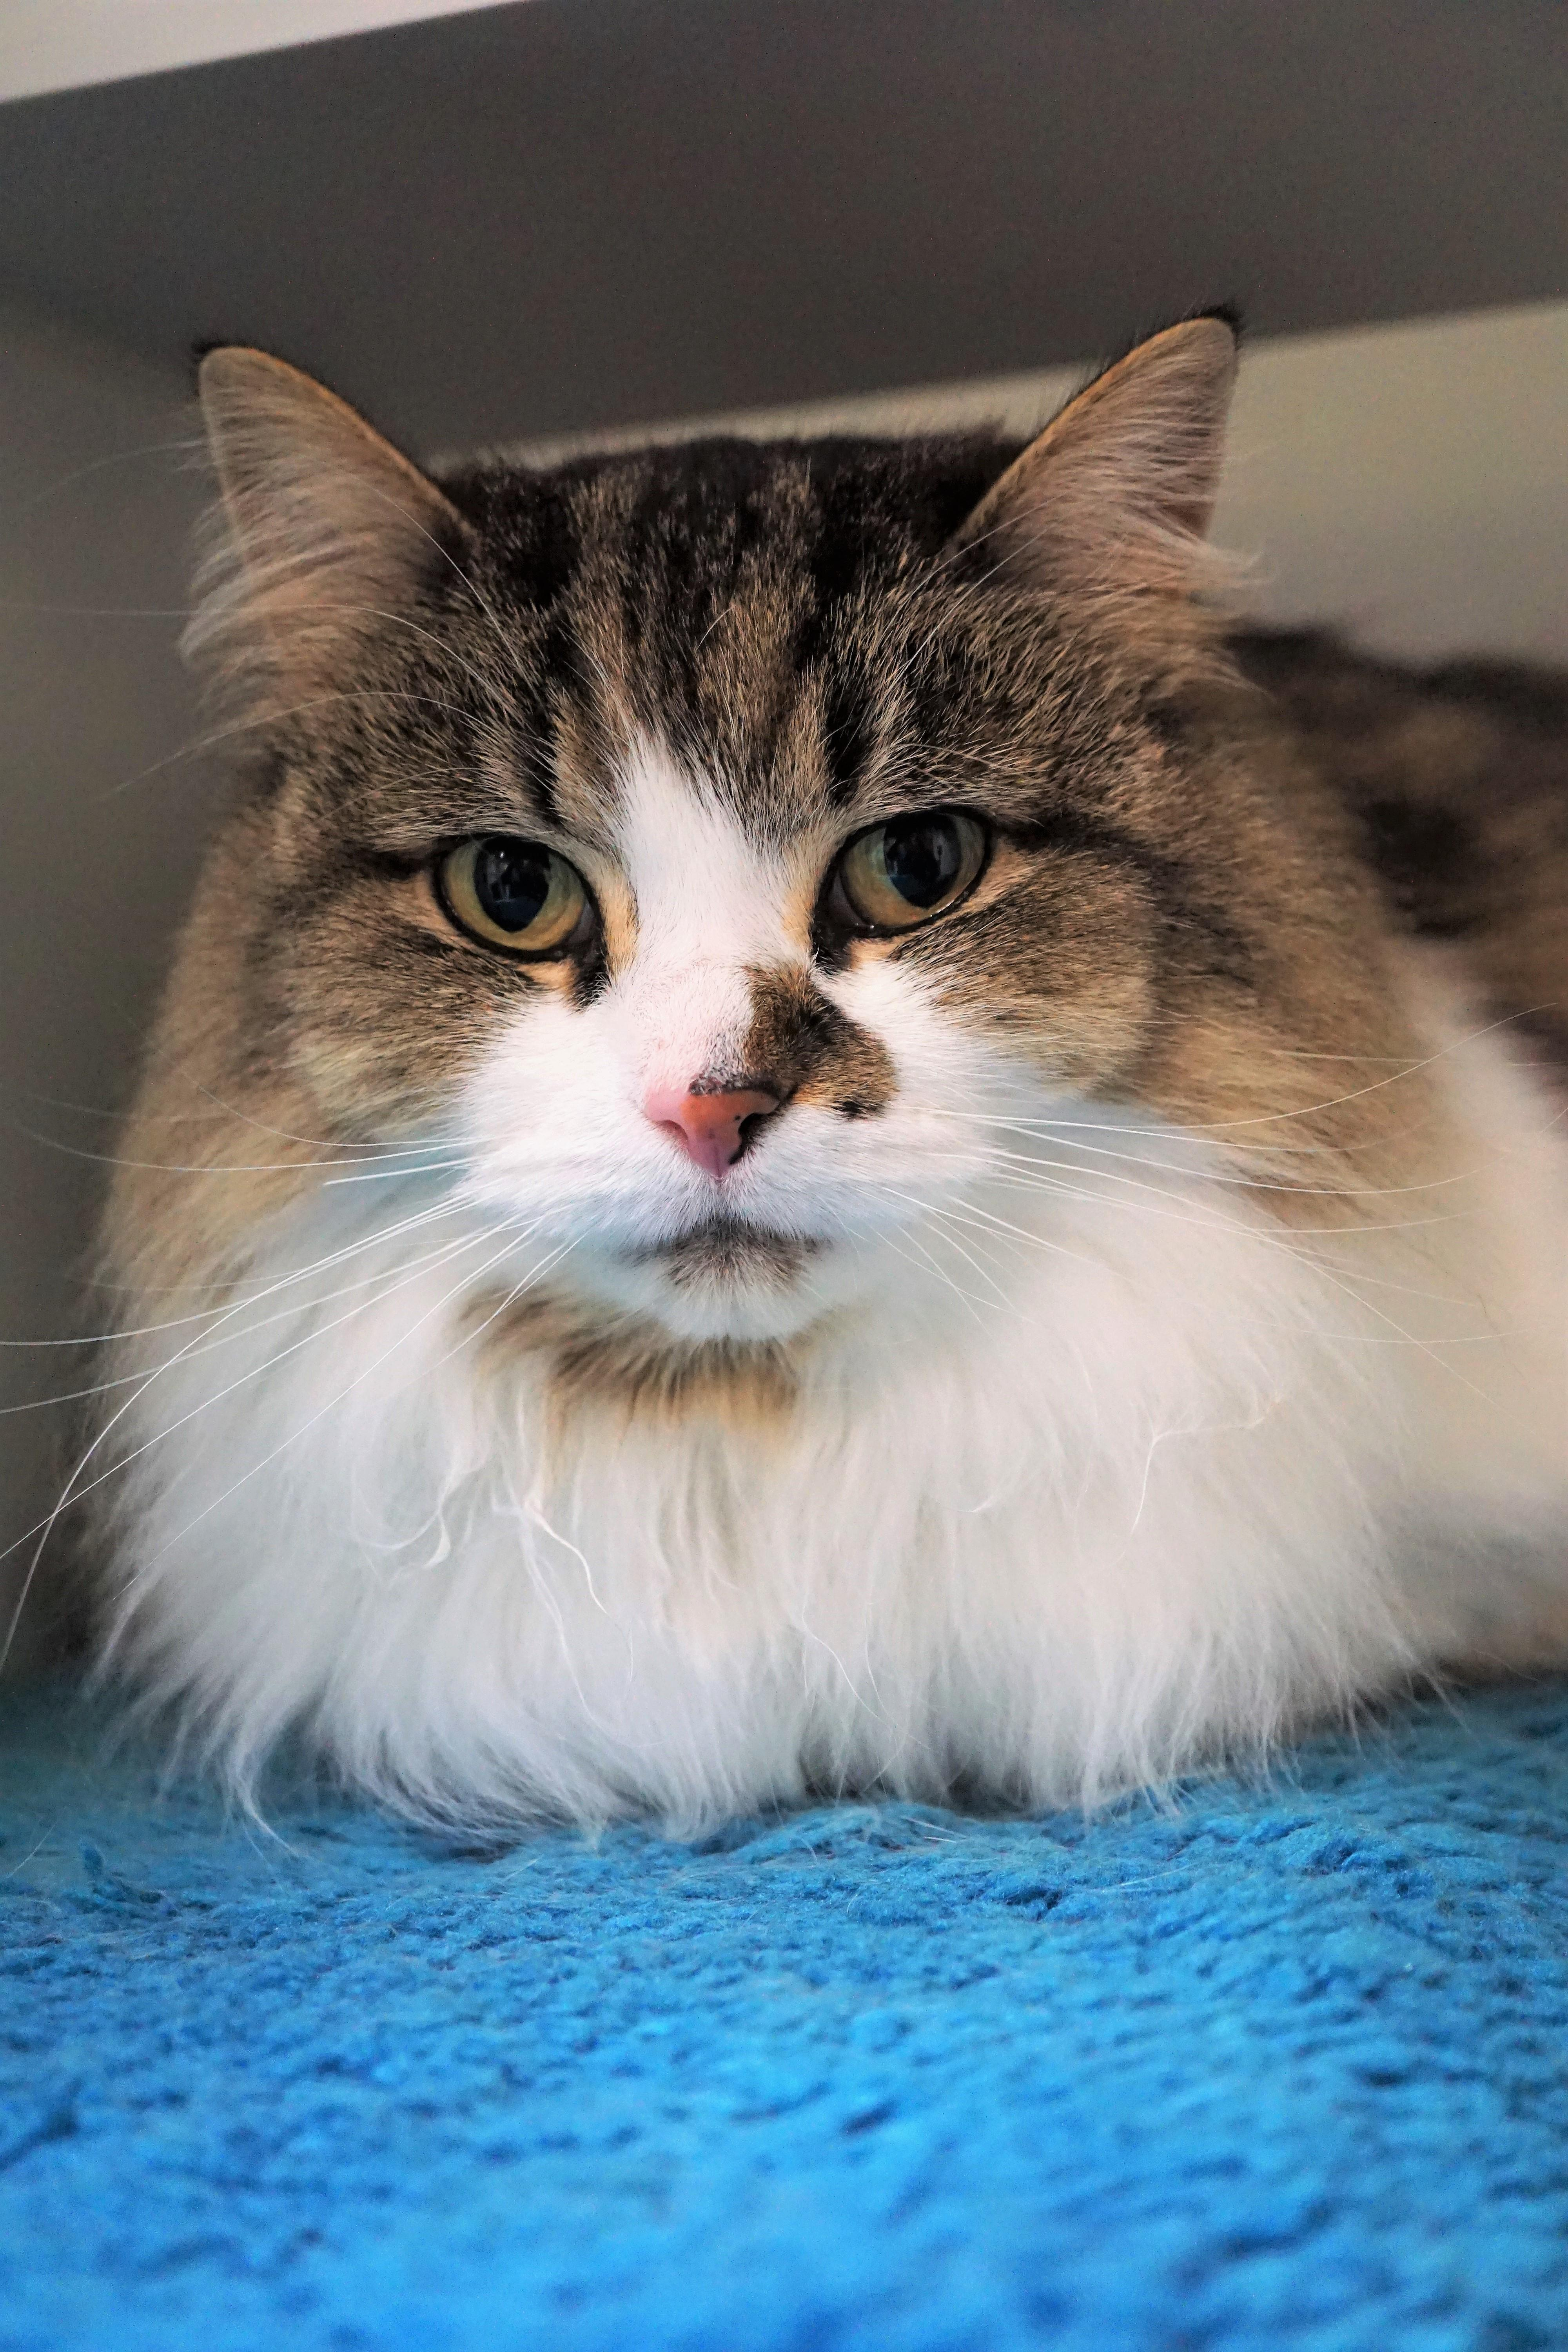 Hi there, I'm Abby – a delicate, 10 year old Norwegian forest mix kitty looking for a calm, quiet home to call my own. I can be nervous in new situations so a cat savvy home with teens and adults sounds wonderful for my new life with you! Once I settle in, you'll see I love to cuddle and hope to spend most of my days snuggled by your side. Meet me soon!<p></p>